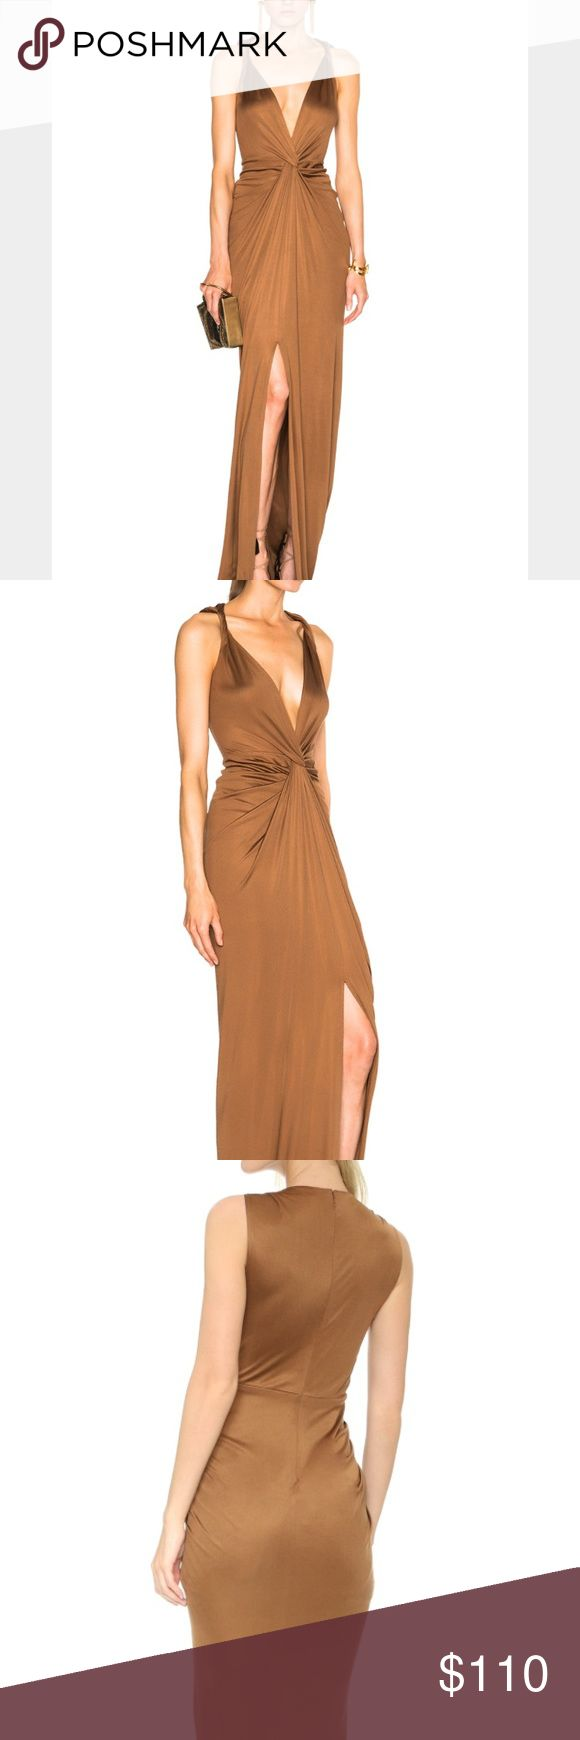 Veronica Beard • Dragonfruit Deep V Gown Never worn. Wrinkled from storage but otherwise like new condition. Modeled photos depict fit accurately. Marked size 4, fits most size small sizes. Bronze color. Great for weddings, prom or special events overall. Veronica Beard Dresses